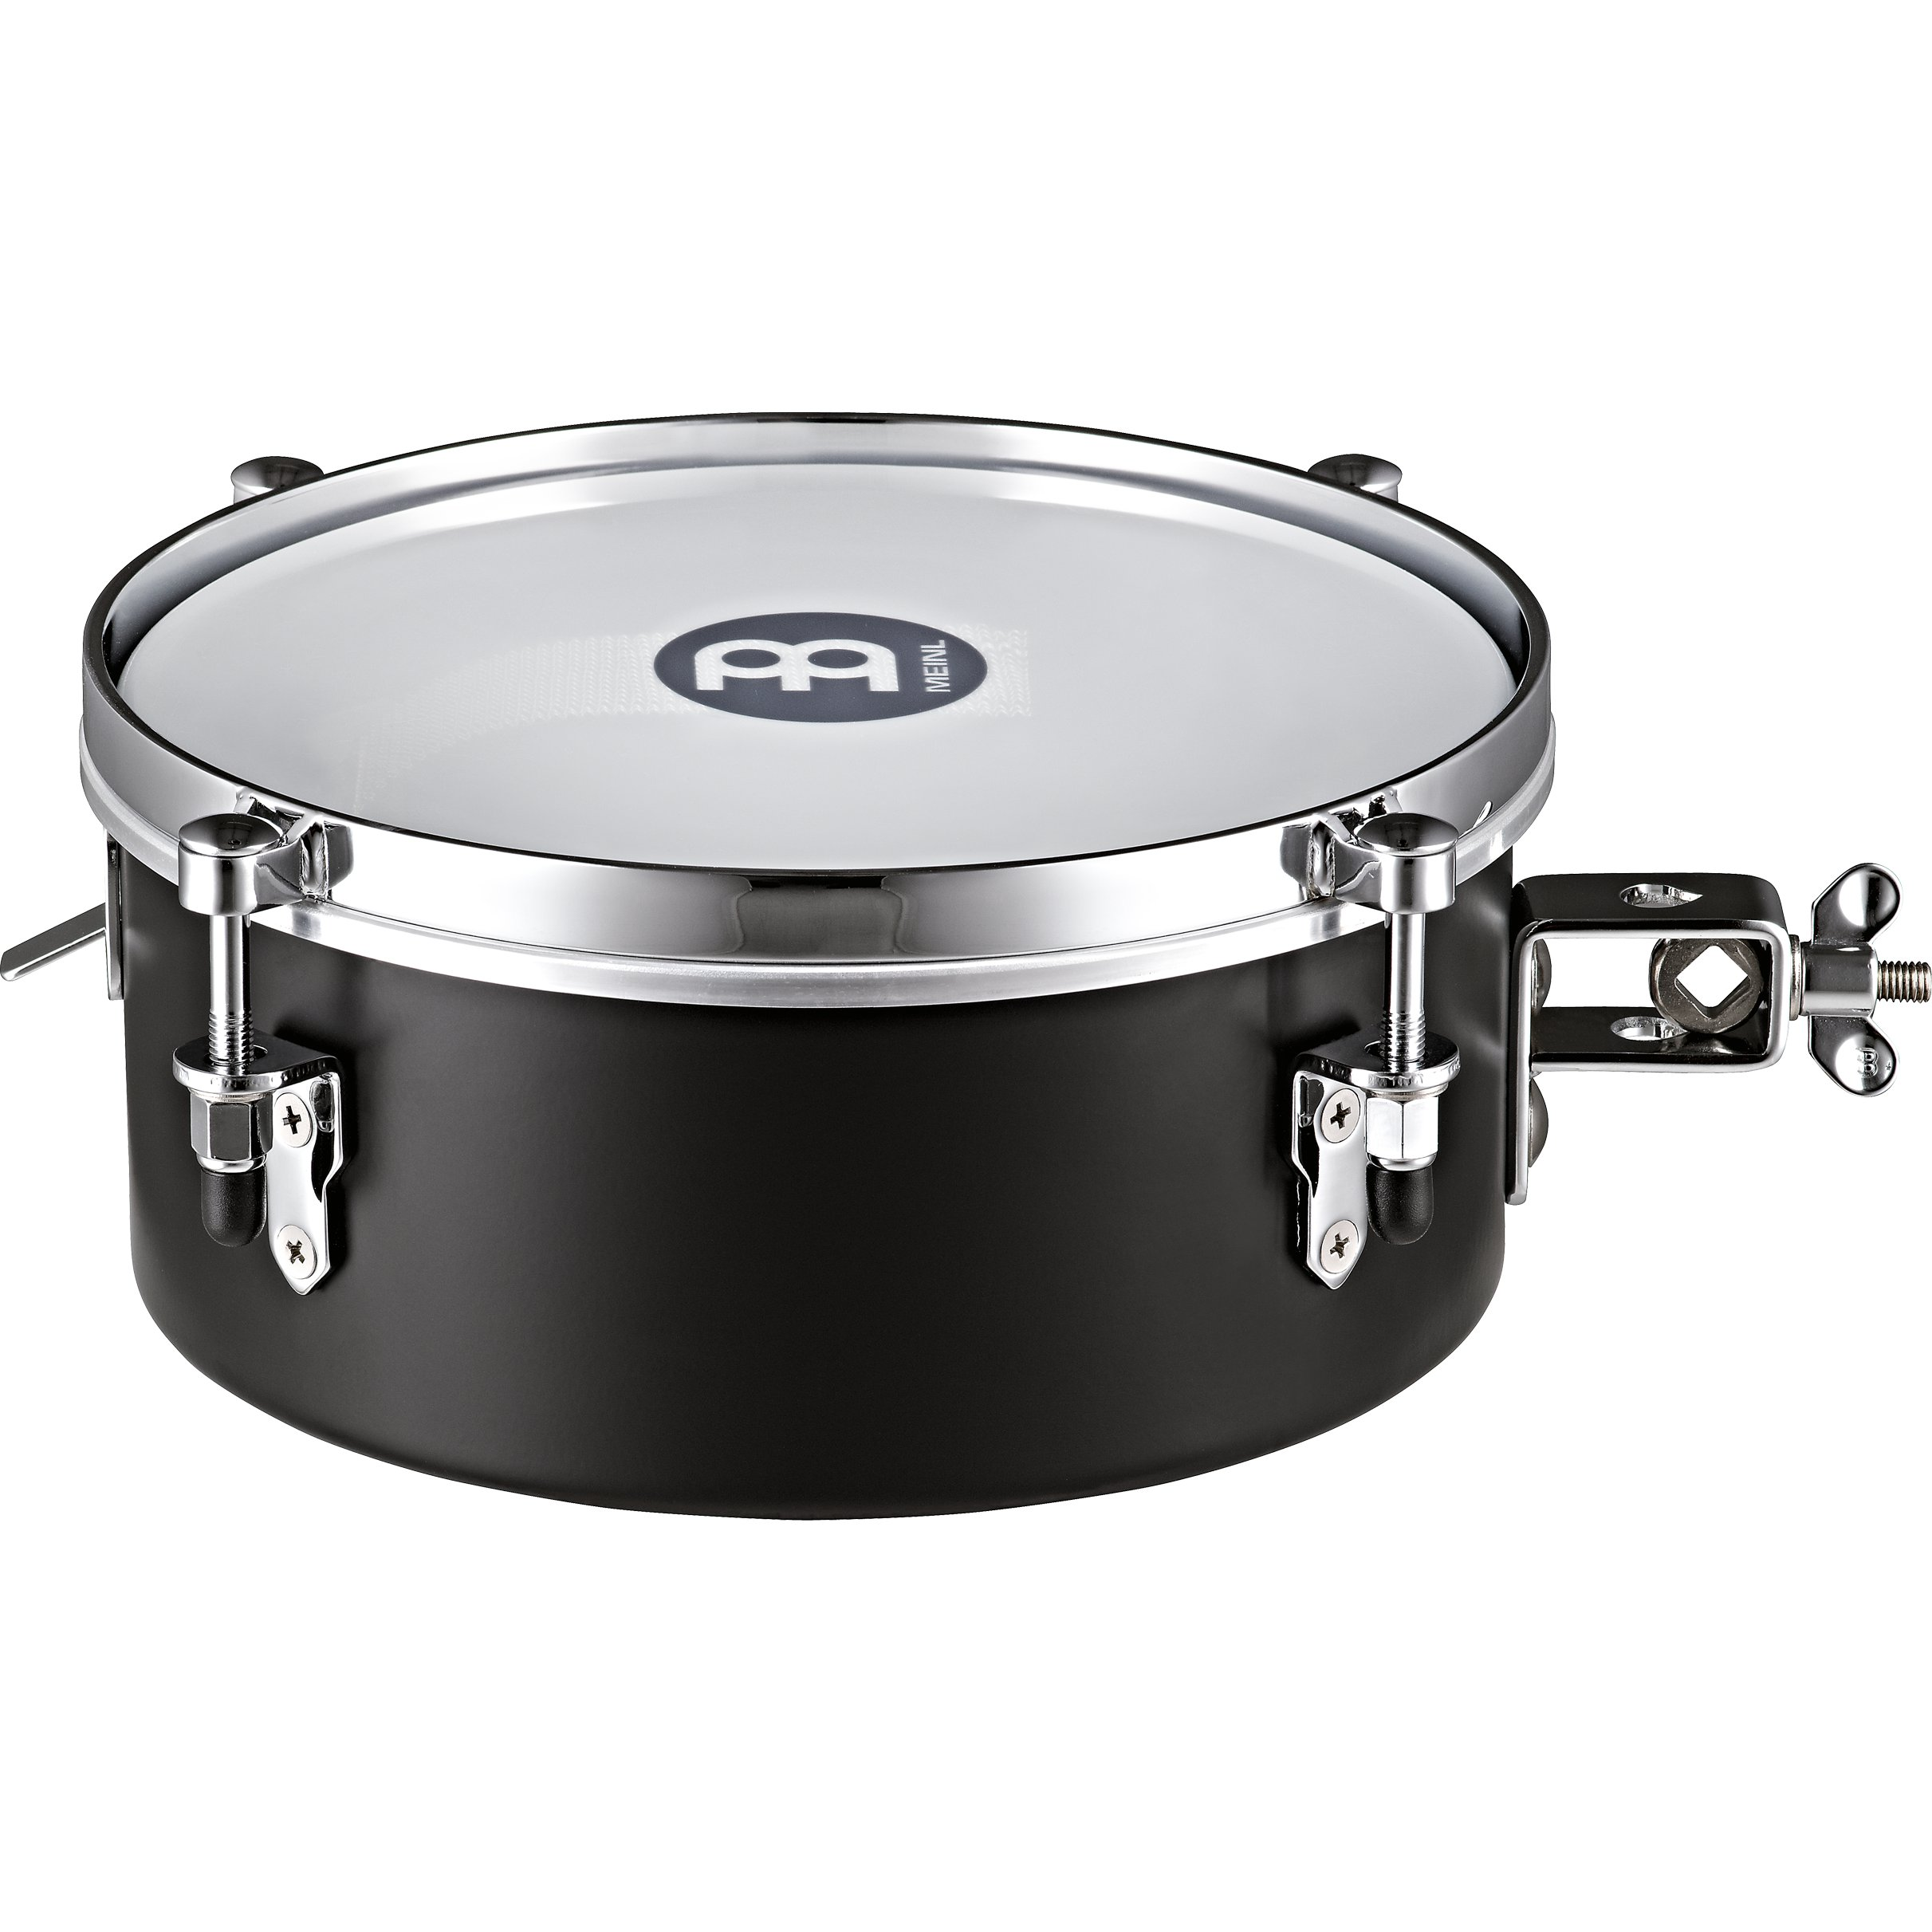 Meinl MDST10BK 10 Zoll Snare Timbale